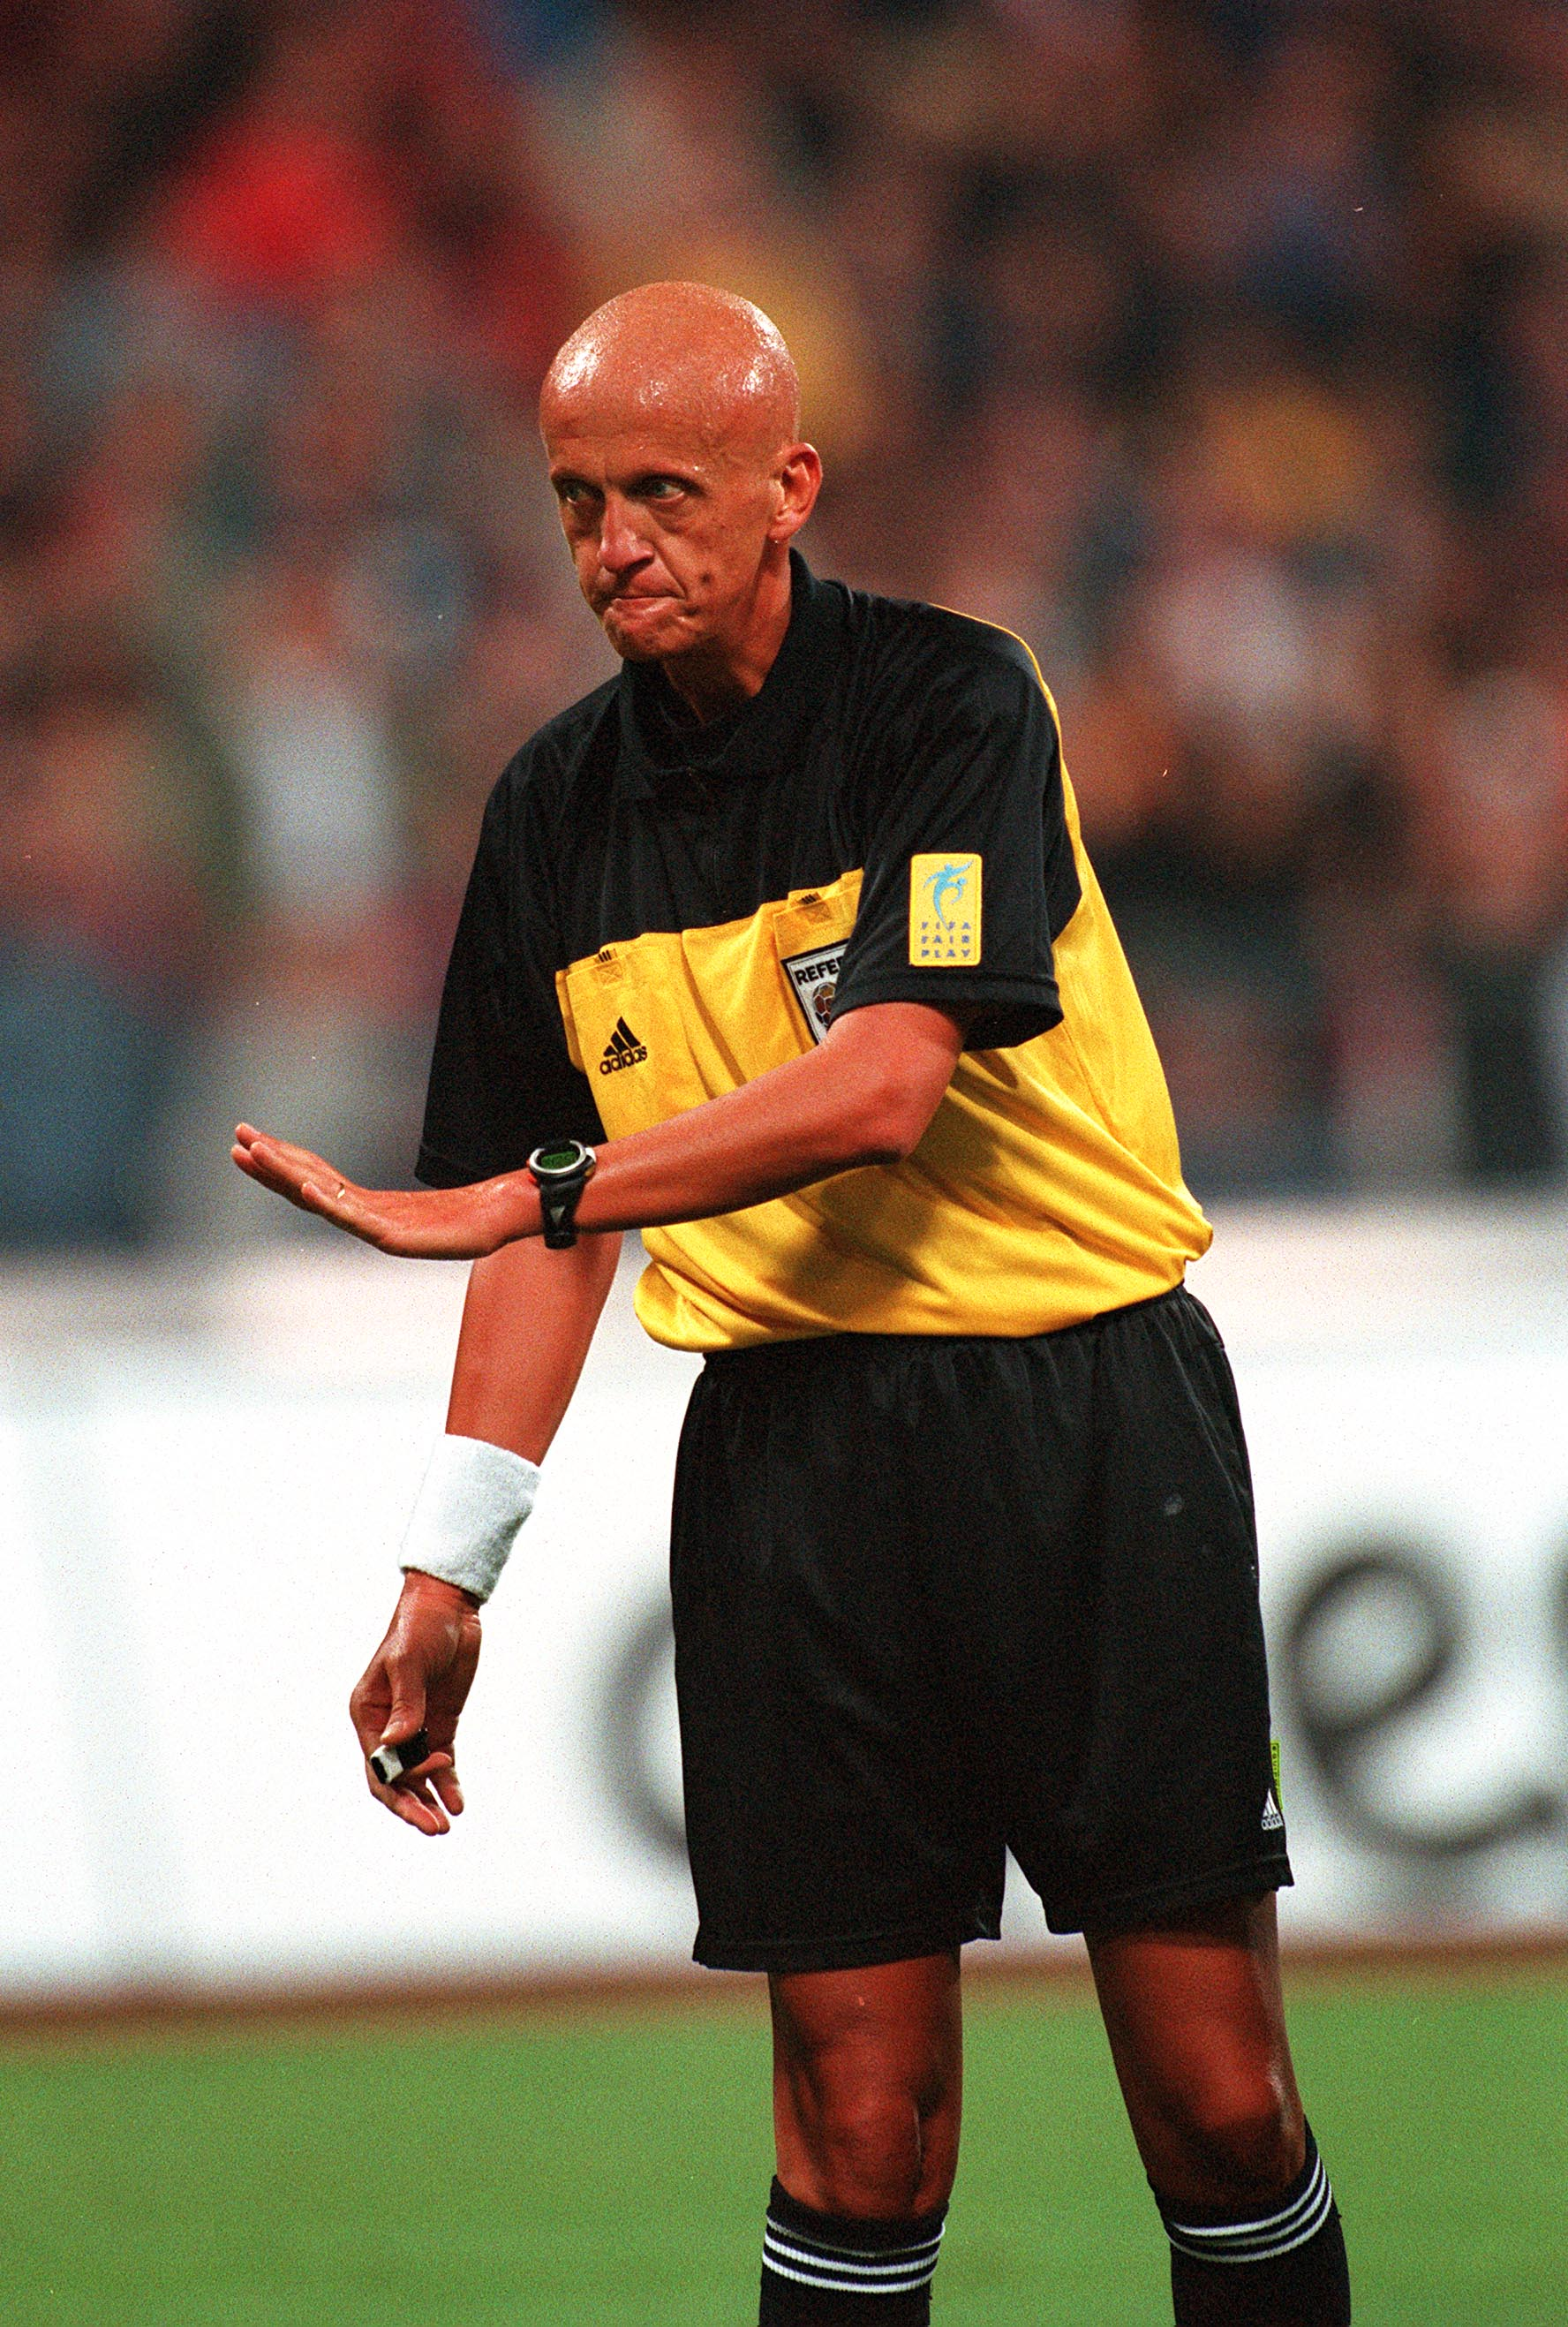 Sport. Football. 2002 World Cup Qualifier. Group 9. Munich. 1st September 2001. Germany 1 v England 5. Referee Pierluigi Collina, from Italy.